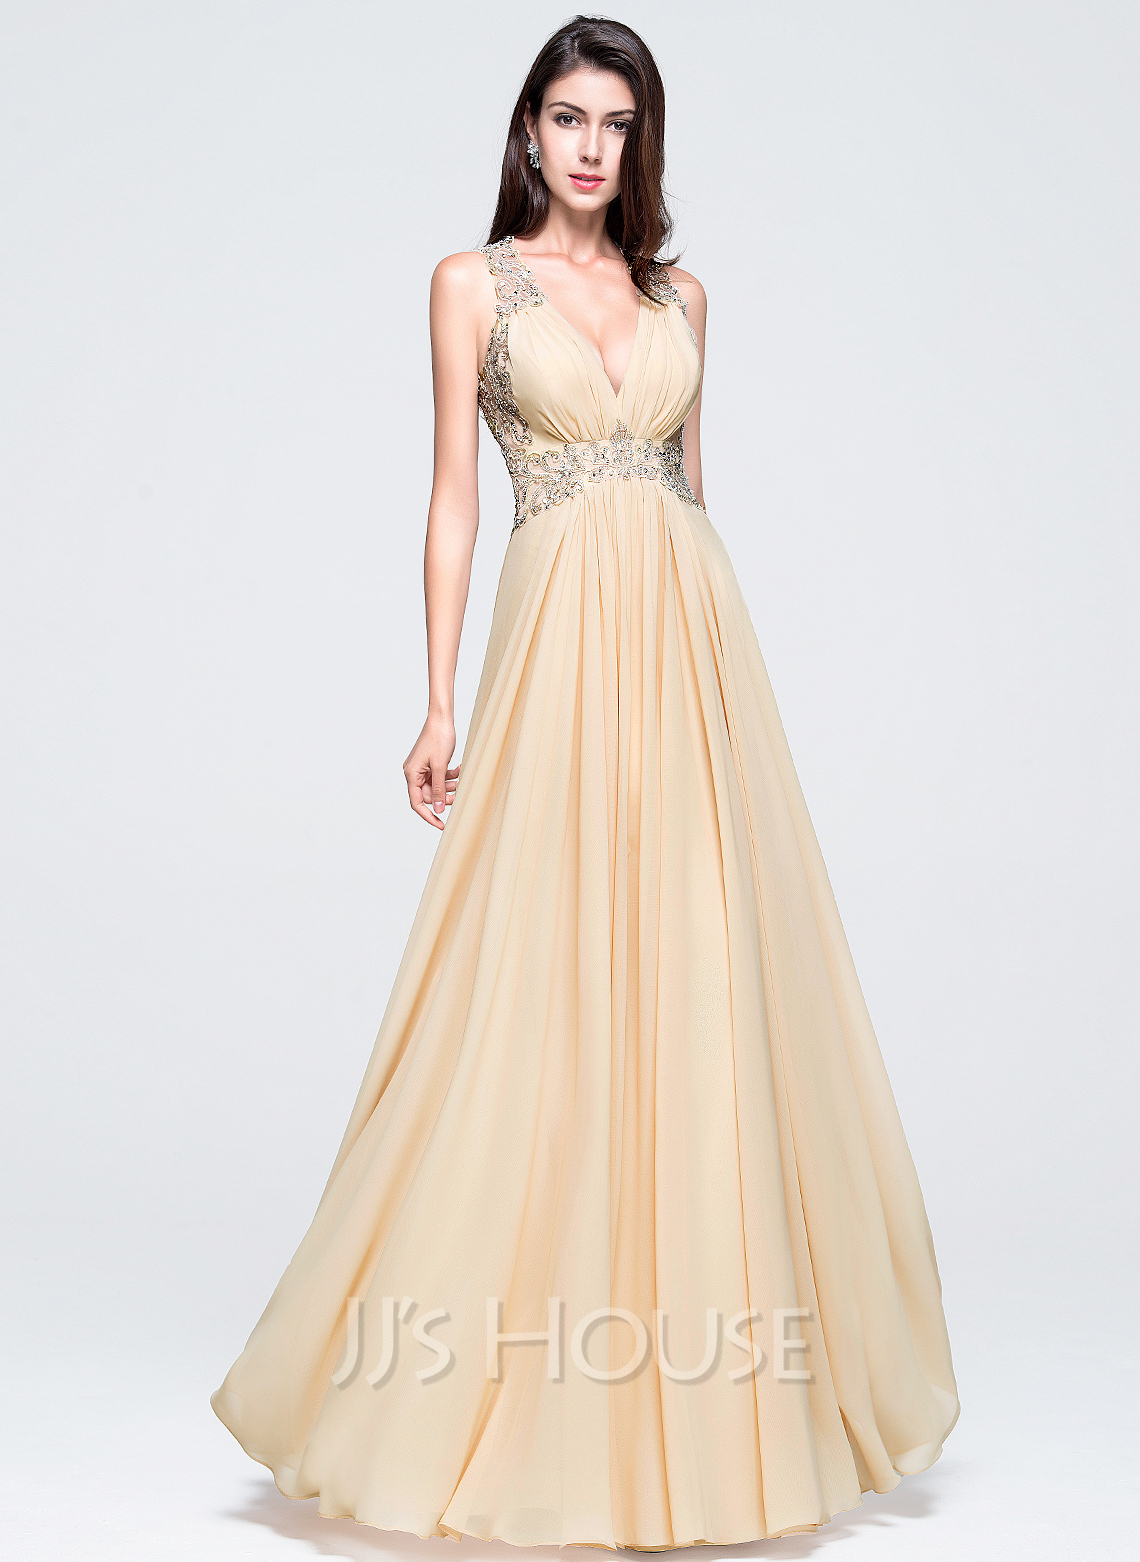 6049f153ae1c6 A-Line/Princess V-neck Floor-Length Chiffon Prom Dresses With Beading. Loading  zoom